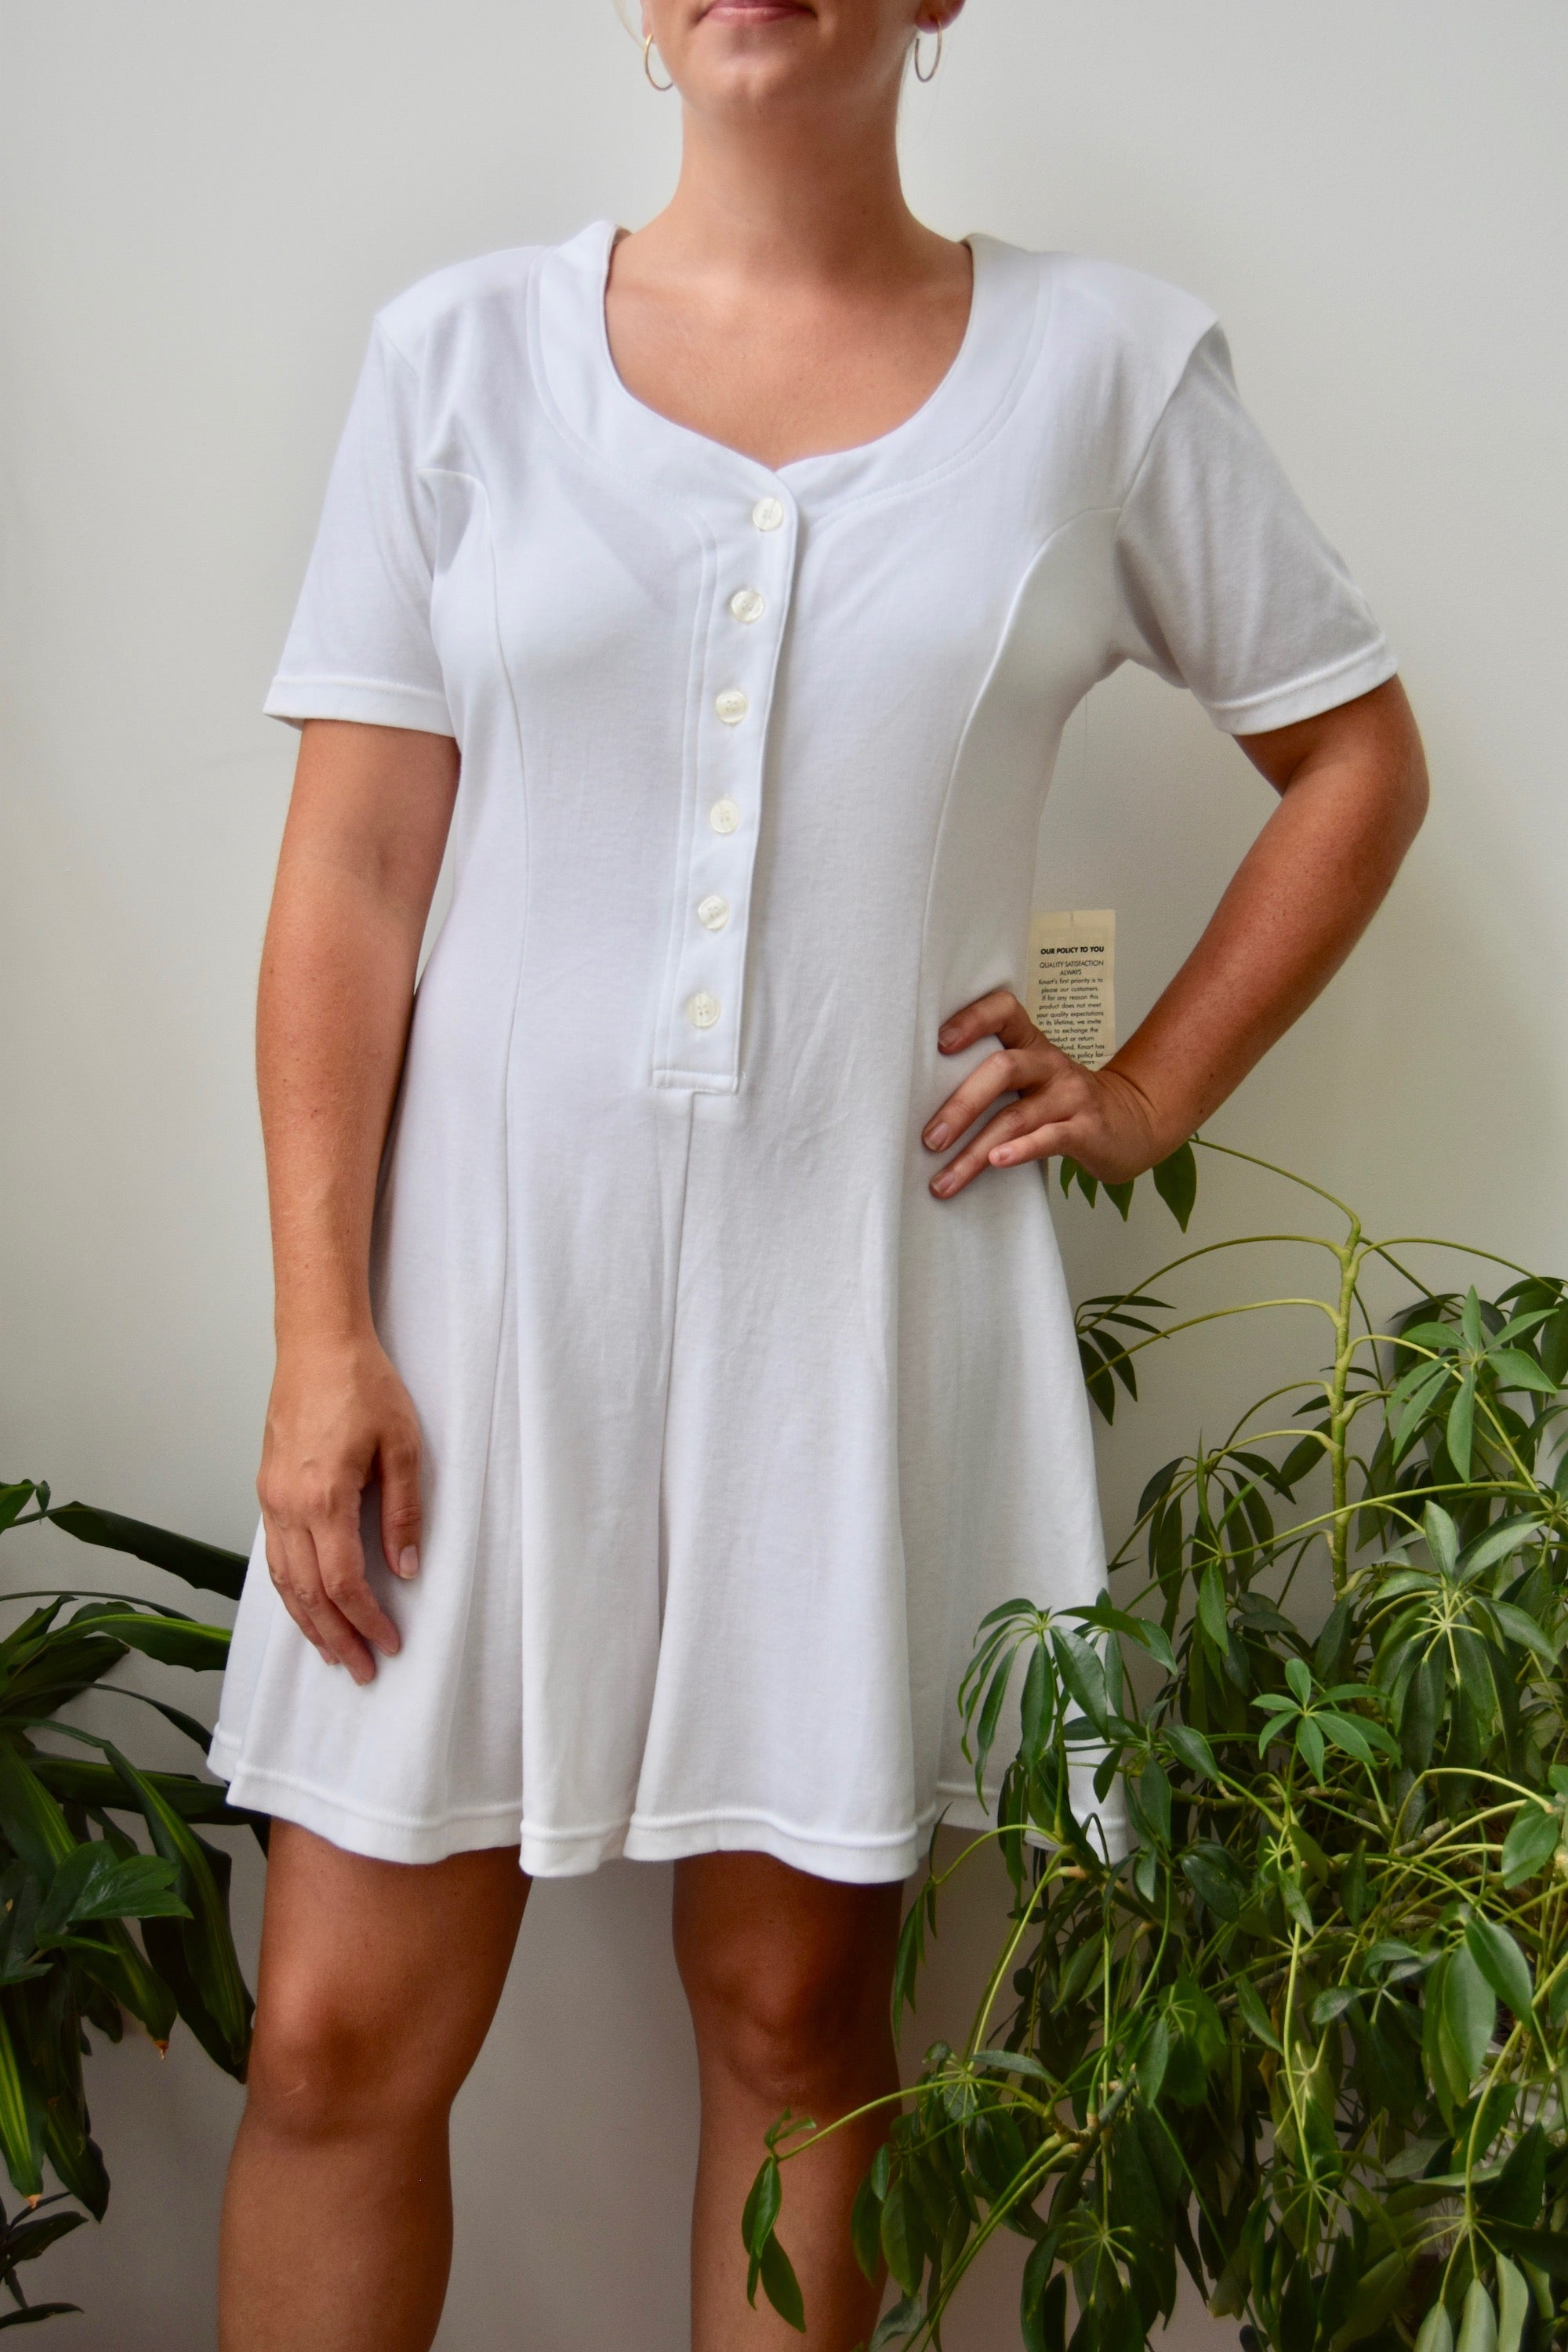 Long Sleeve White Linen Top FREE SHIPPING